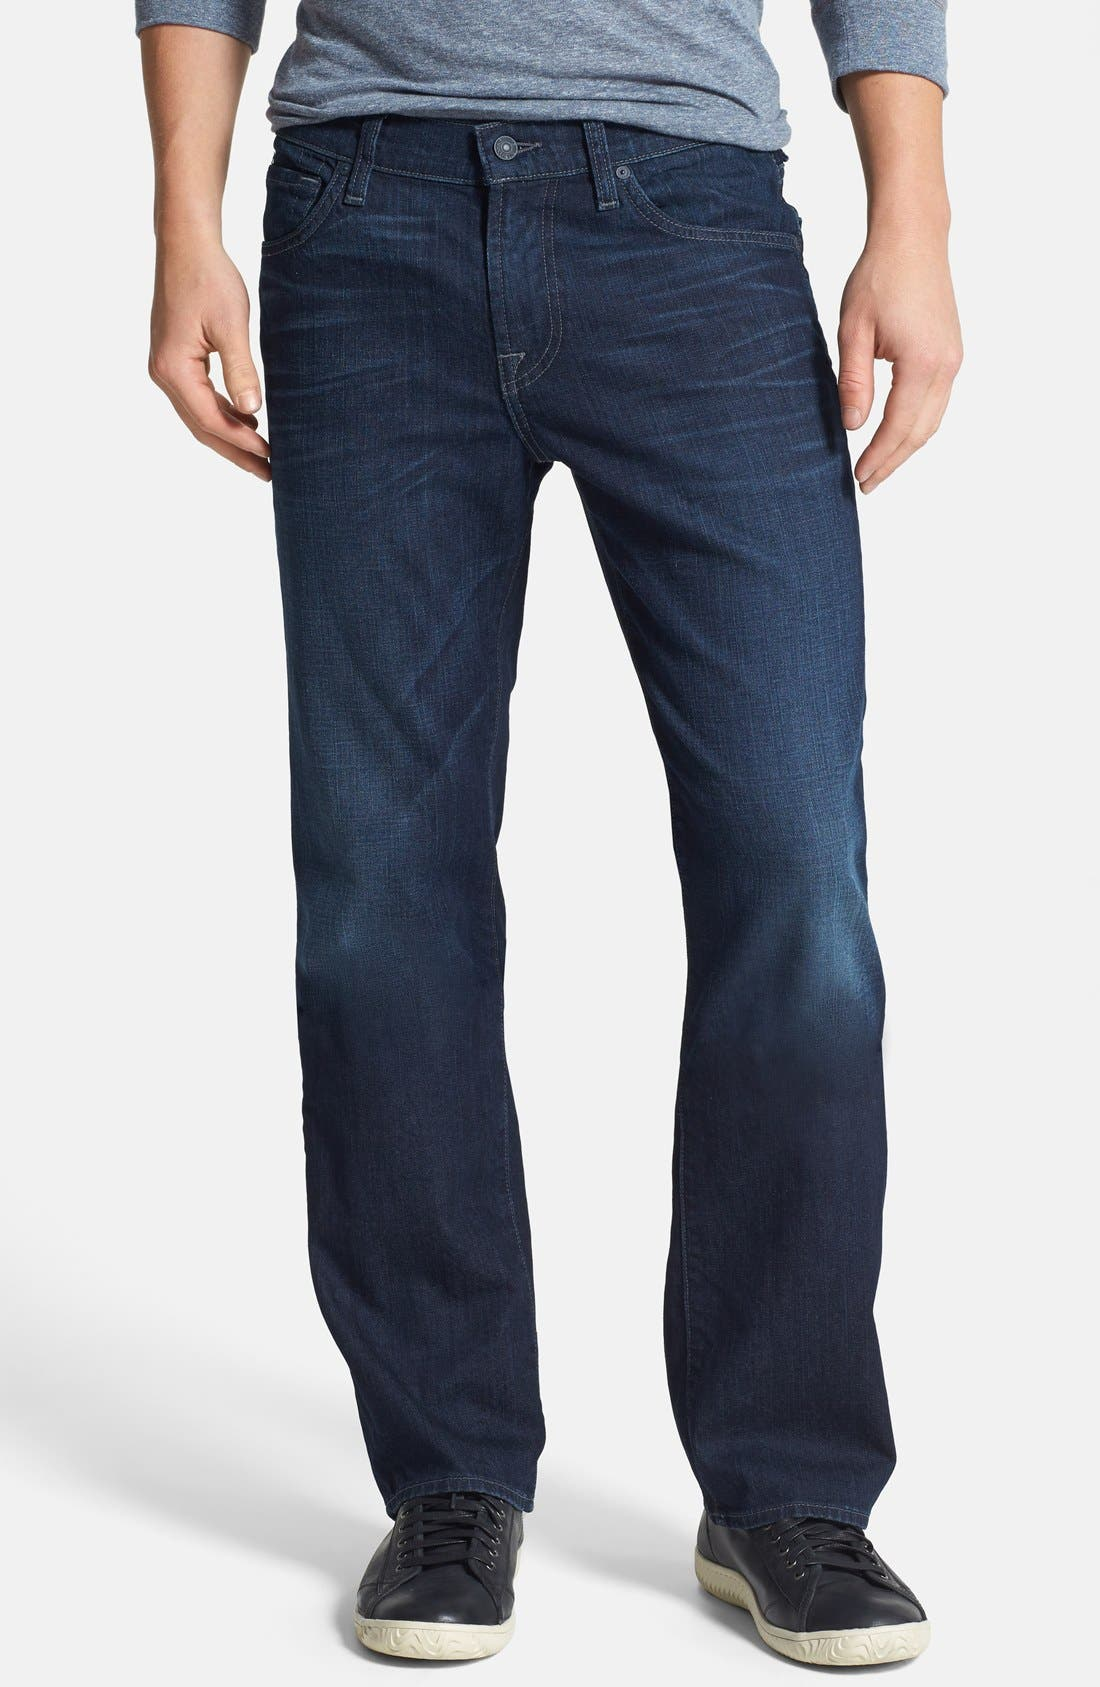 Alternate Image 1 Selected - 7 For All Mankind® 'Austyn' Relaxed Straight Leg Jeans (Broadview Way)